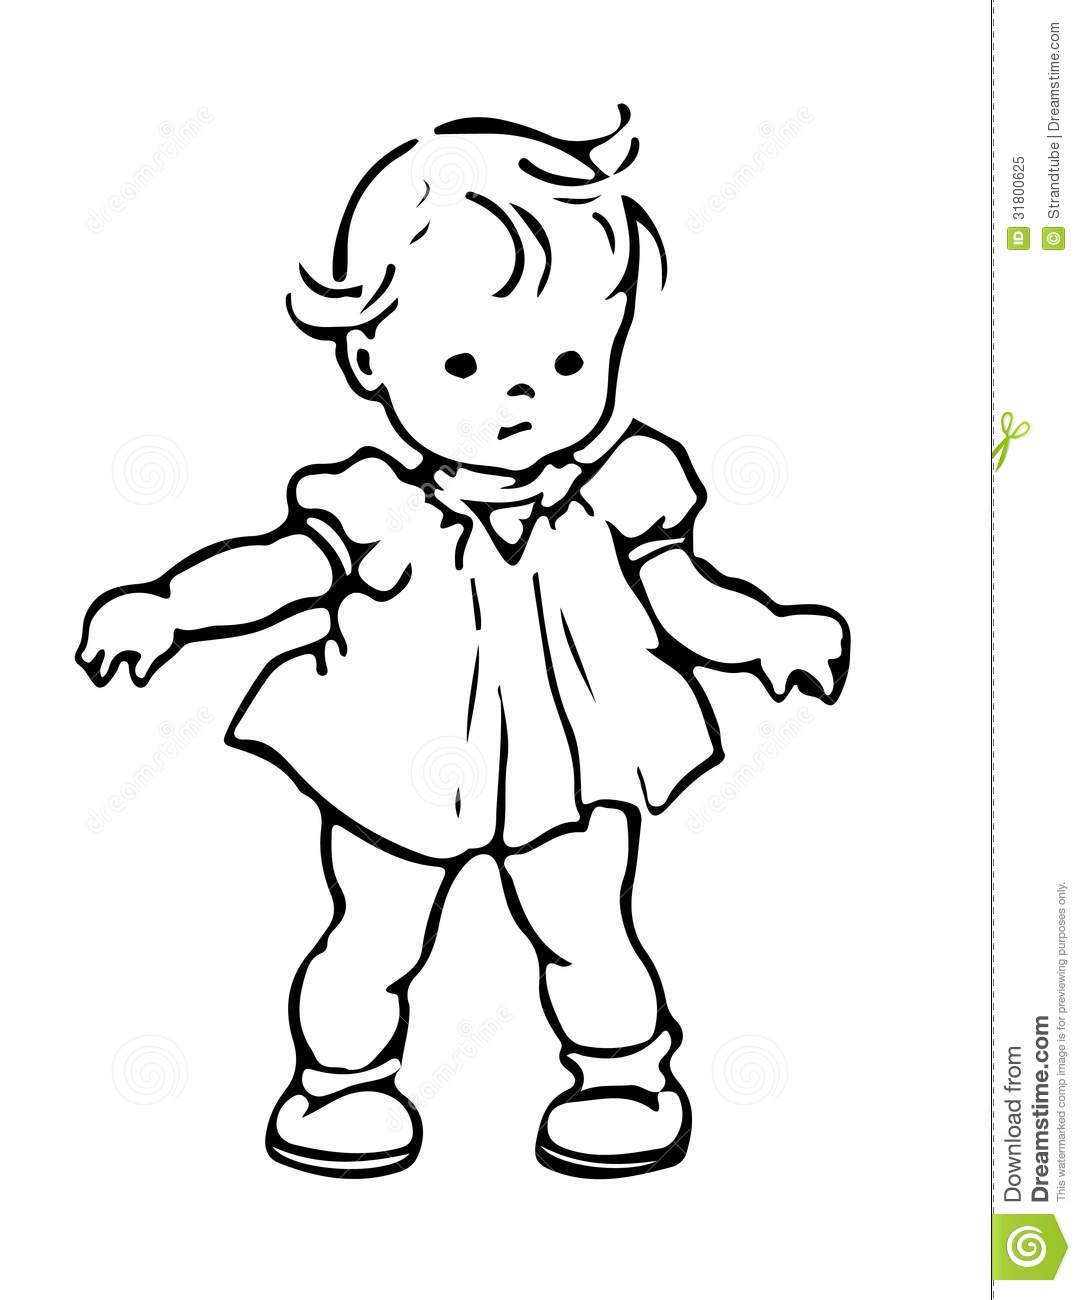 Baby Stock Illustration Illustration Of Sitting Person